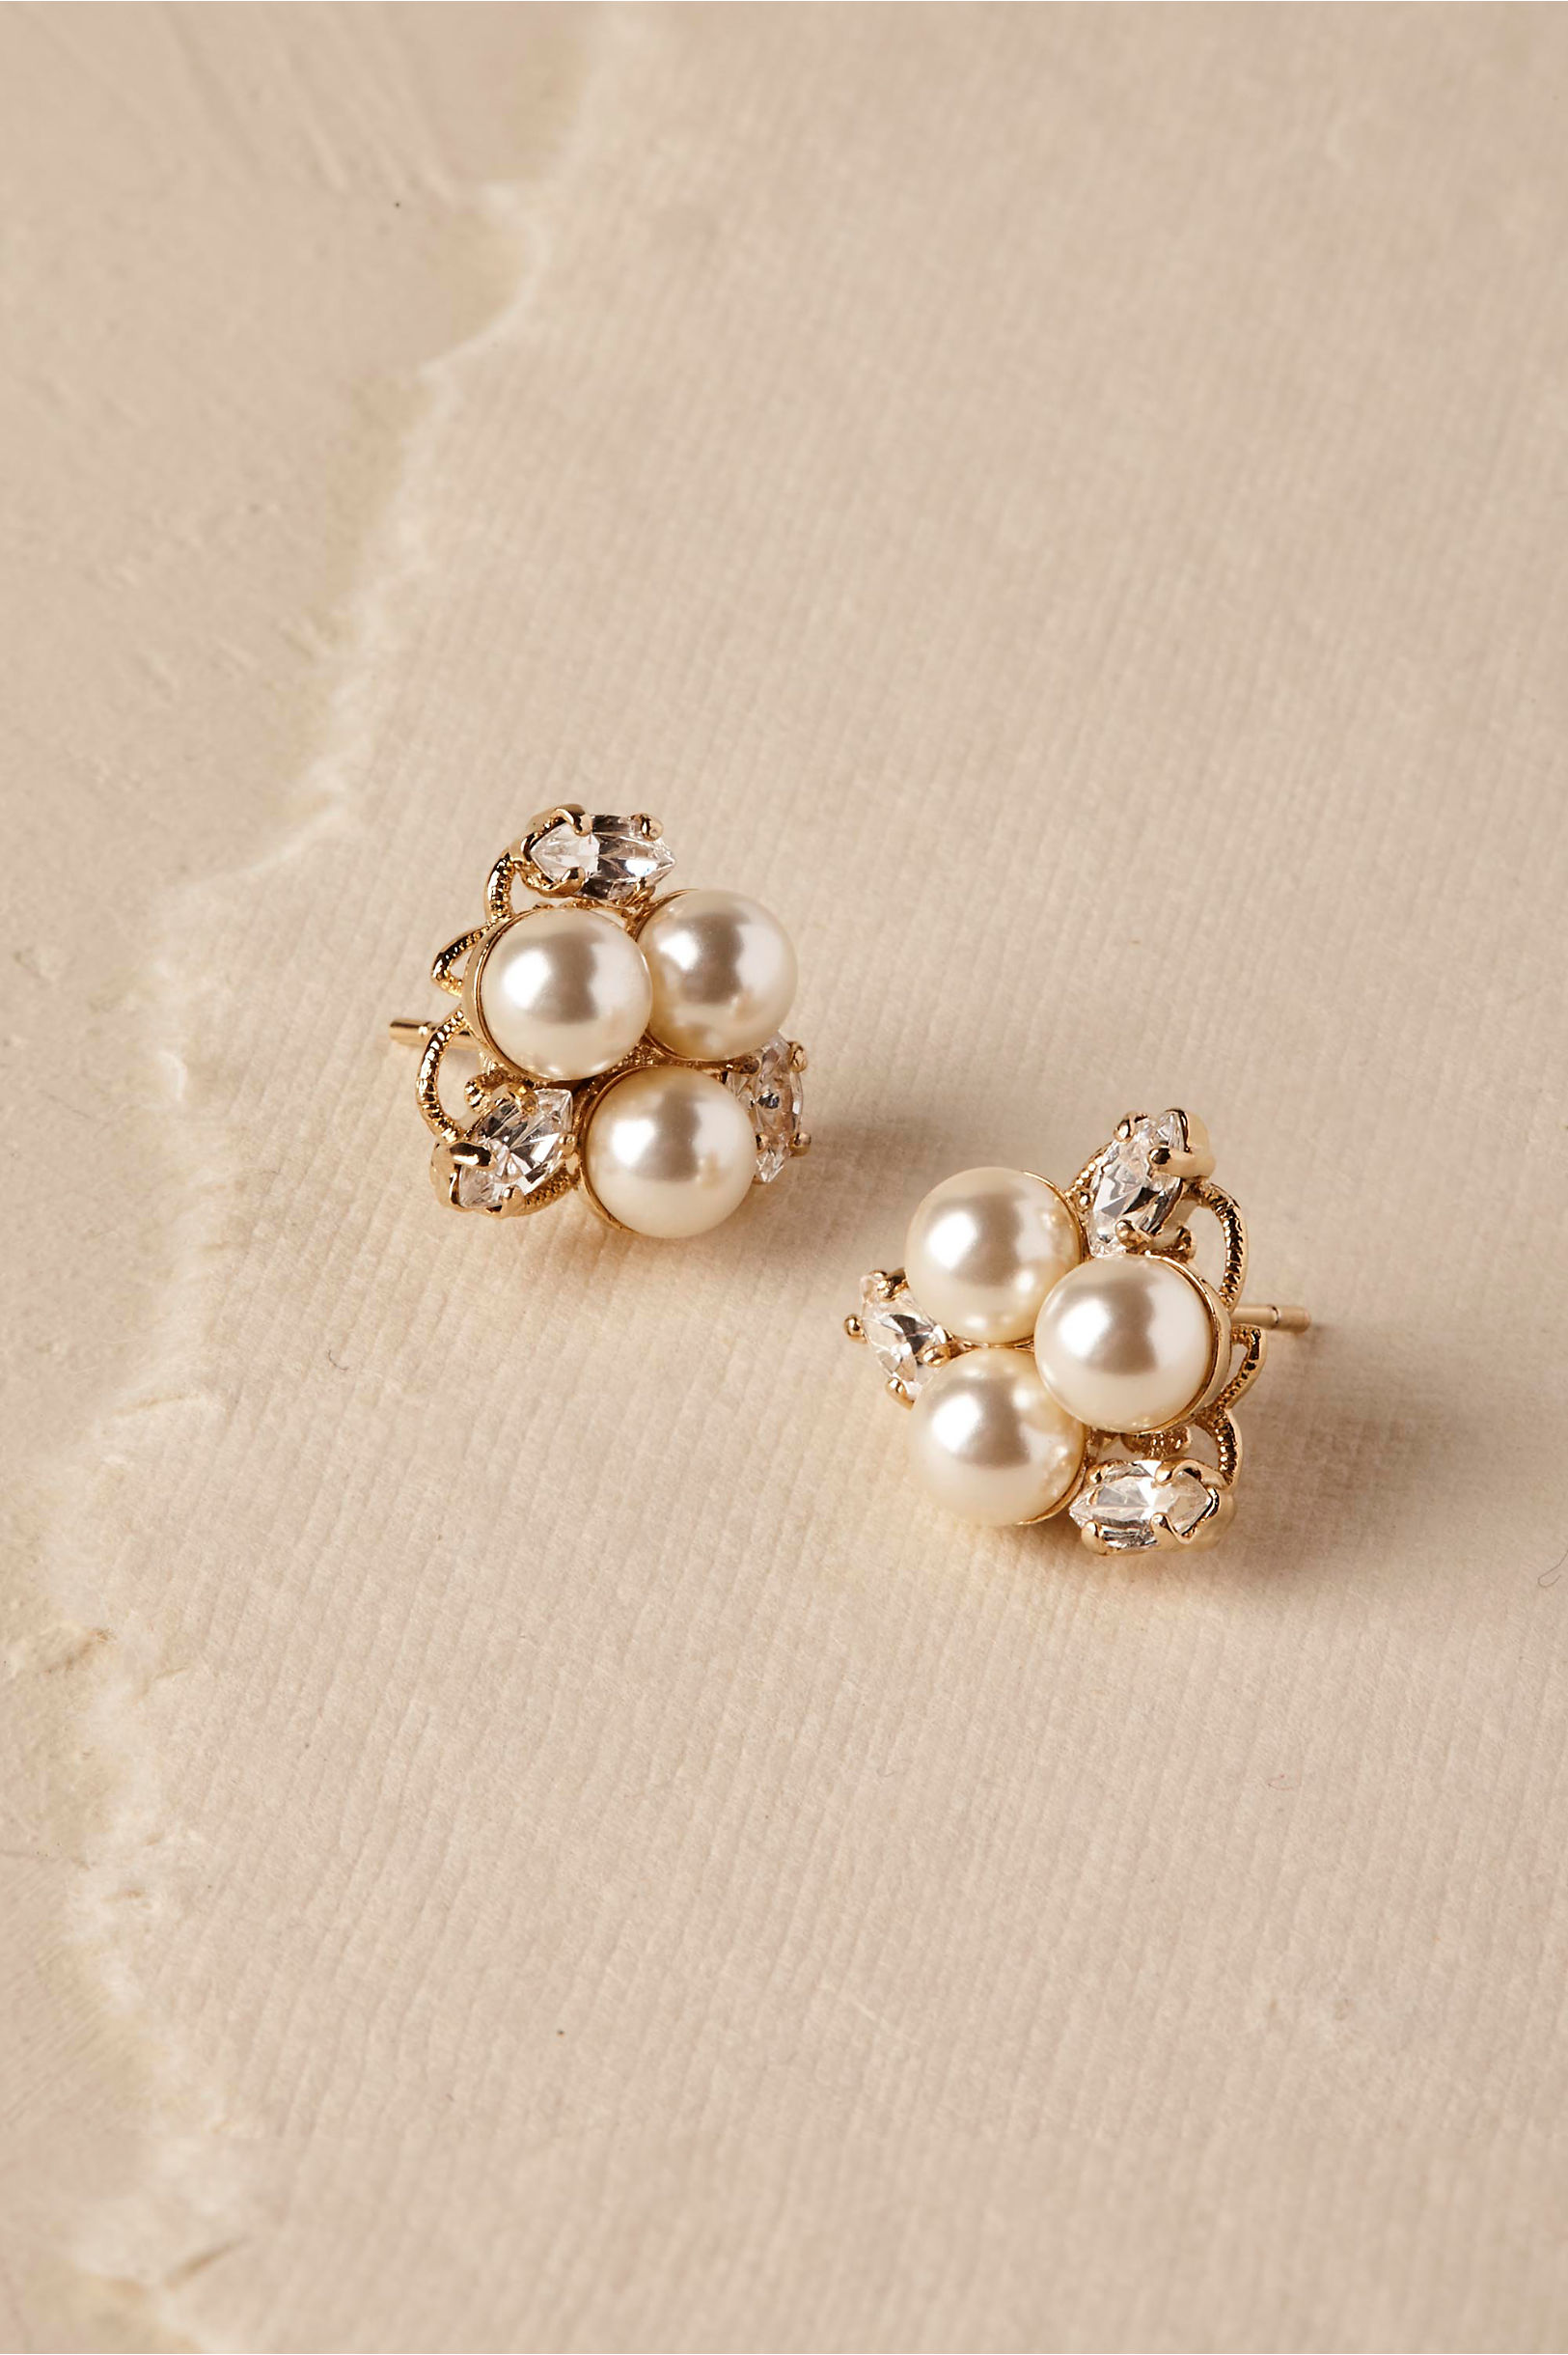 pearl gold pdp rsp oval johnlewis buyfinesse finesse at com white main lewis earrings stud online john